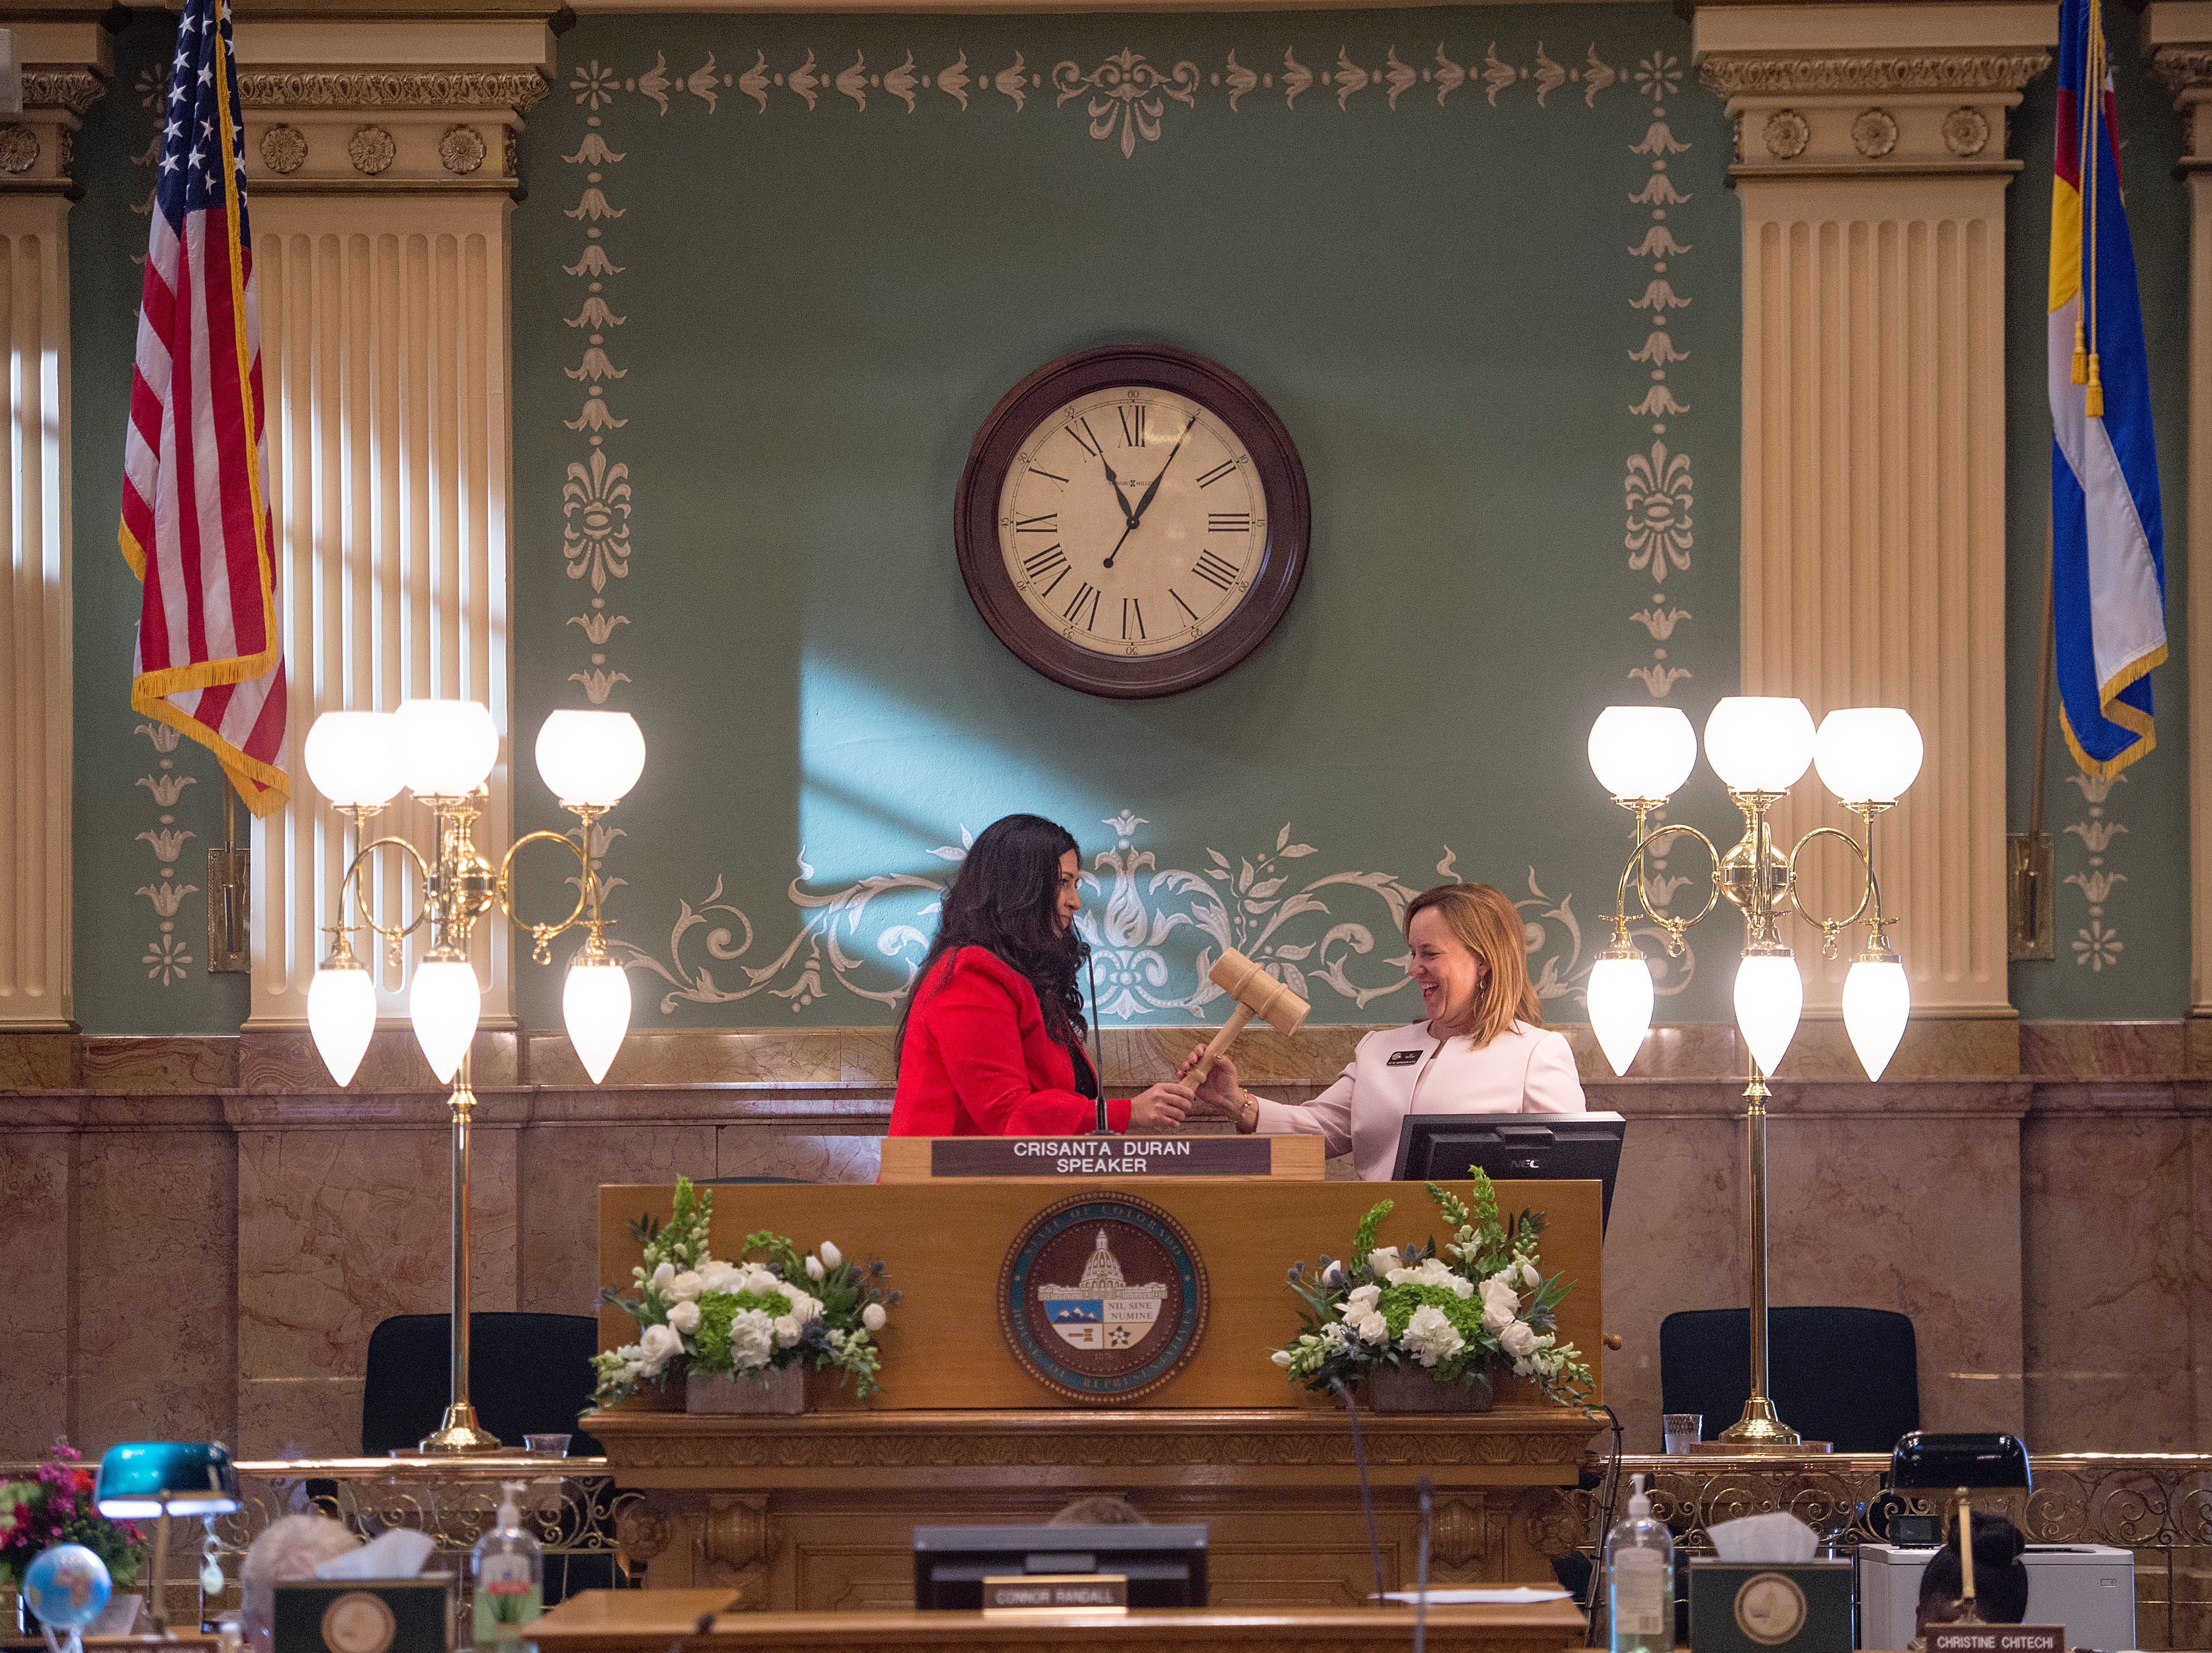 Crisanta Duran hands over a gavel to Speaker of the House KC Becker as the 72nd General Assembly convenes at the Colorado State Capitol on Friday, January 4, 2019.